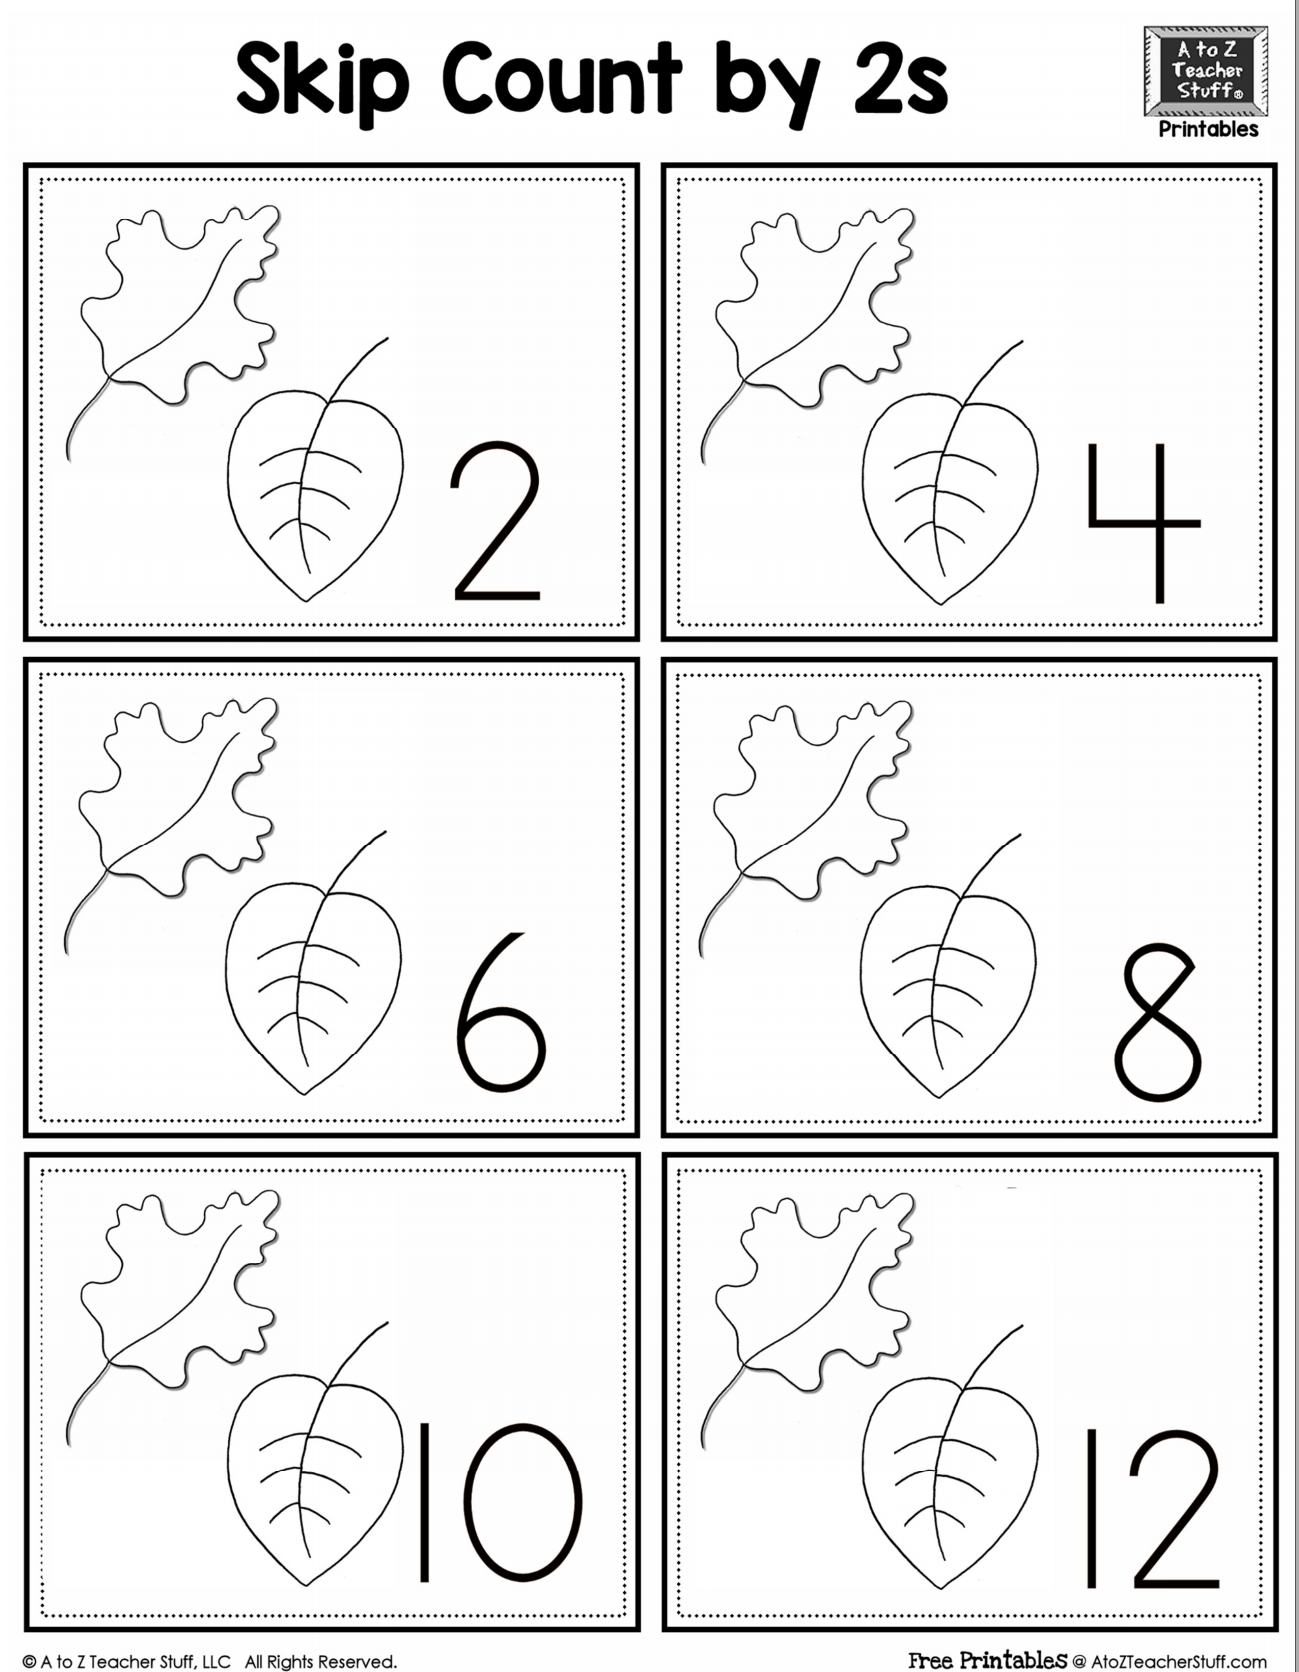 worksheet Skip Count leaf skip counting by 2 a to z teacher stuff printable pages and 2